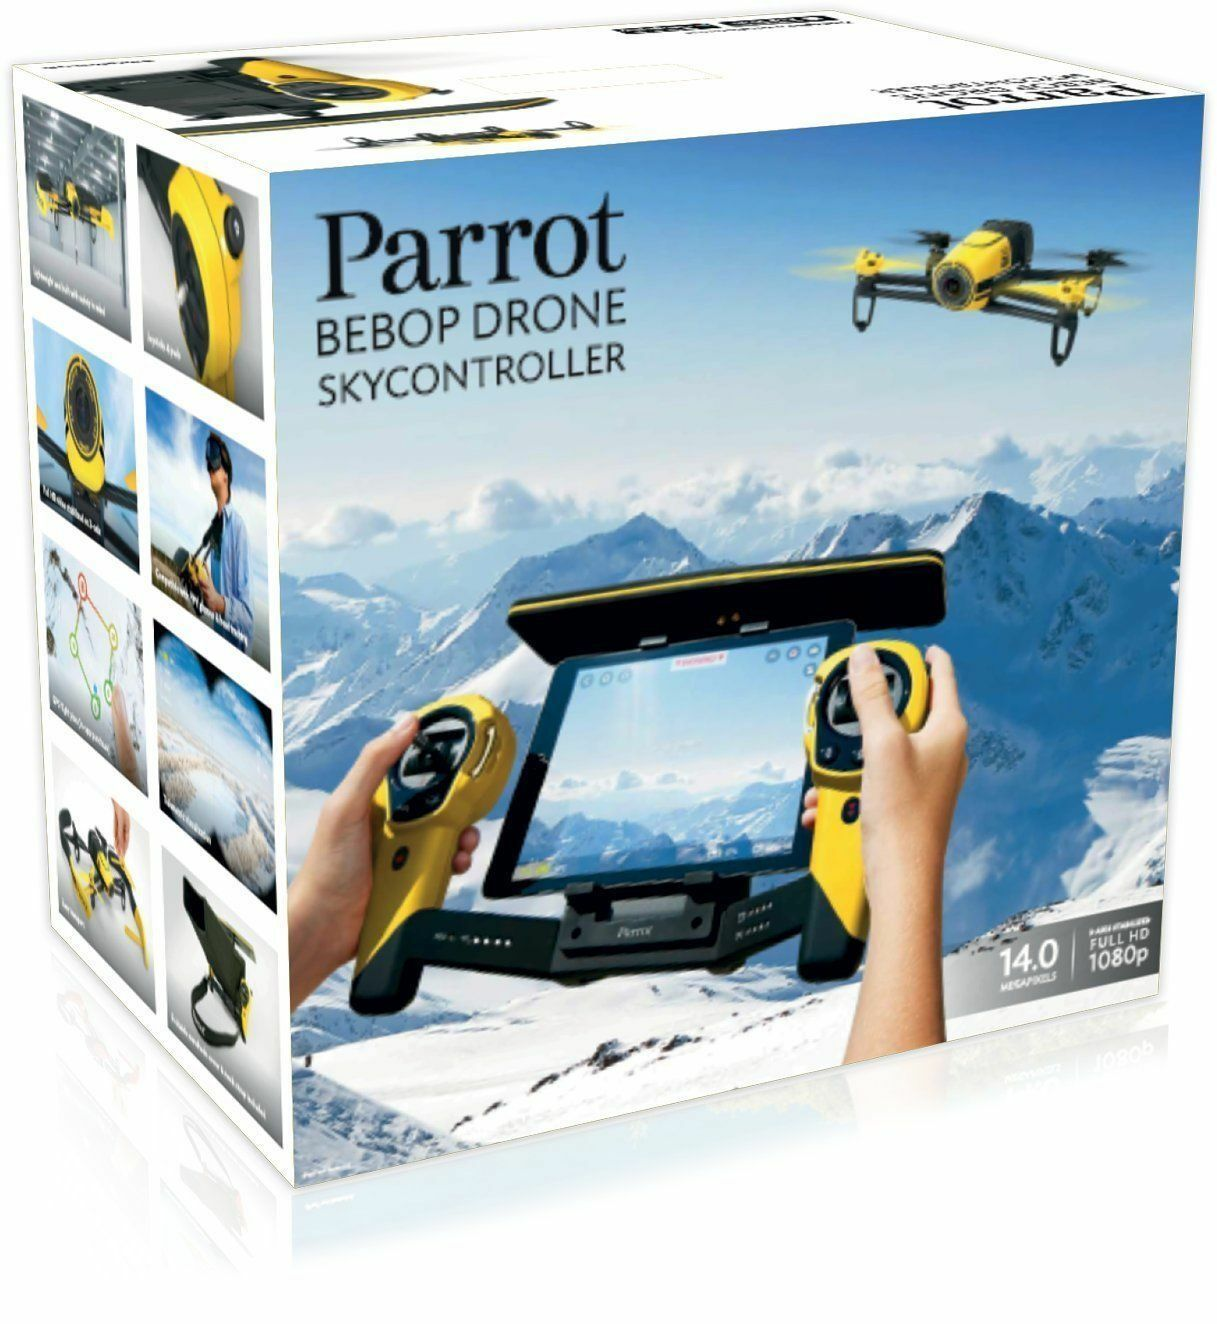 Parred Bebop Drone Yellow With Sky Controller BNIB